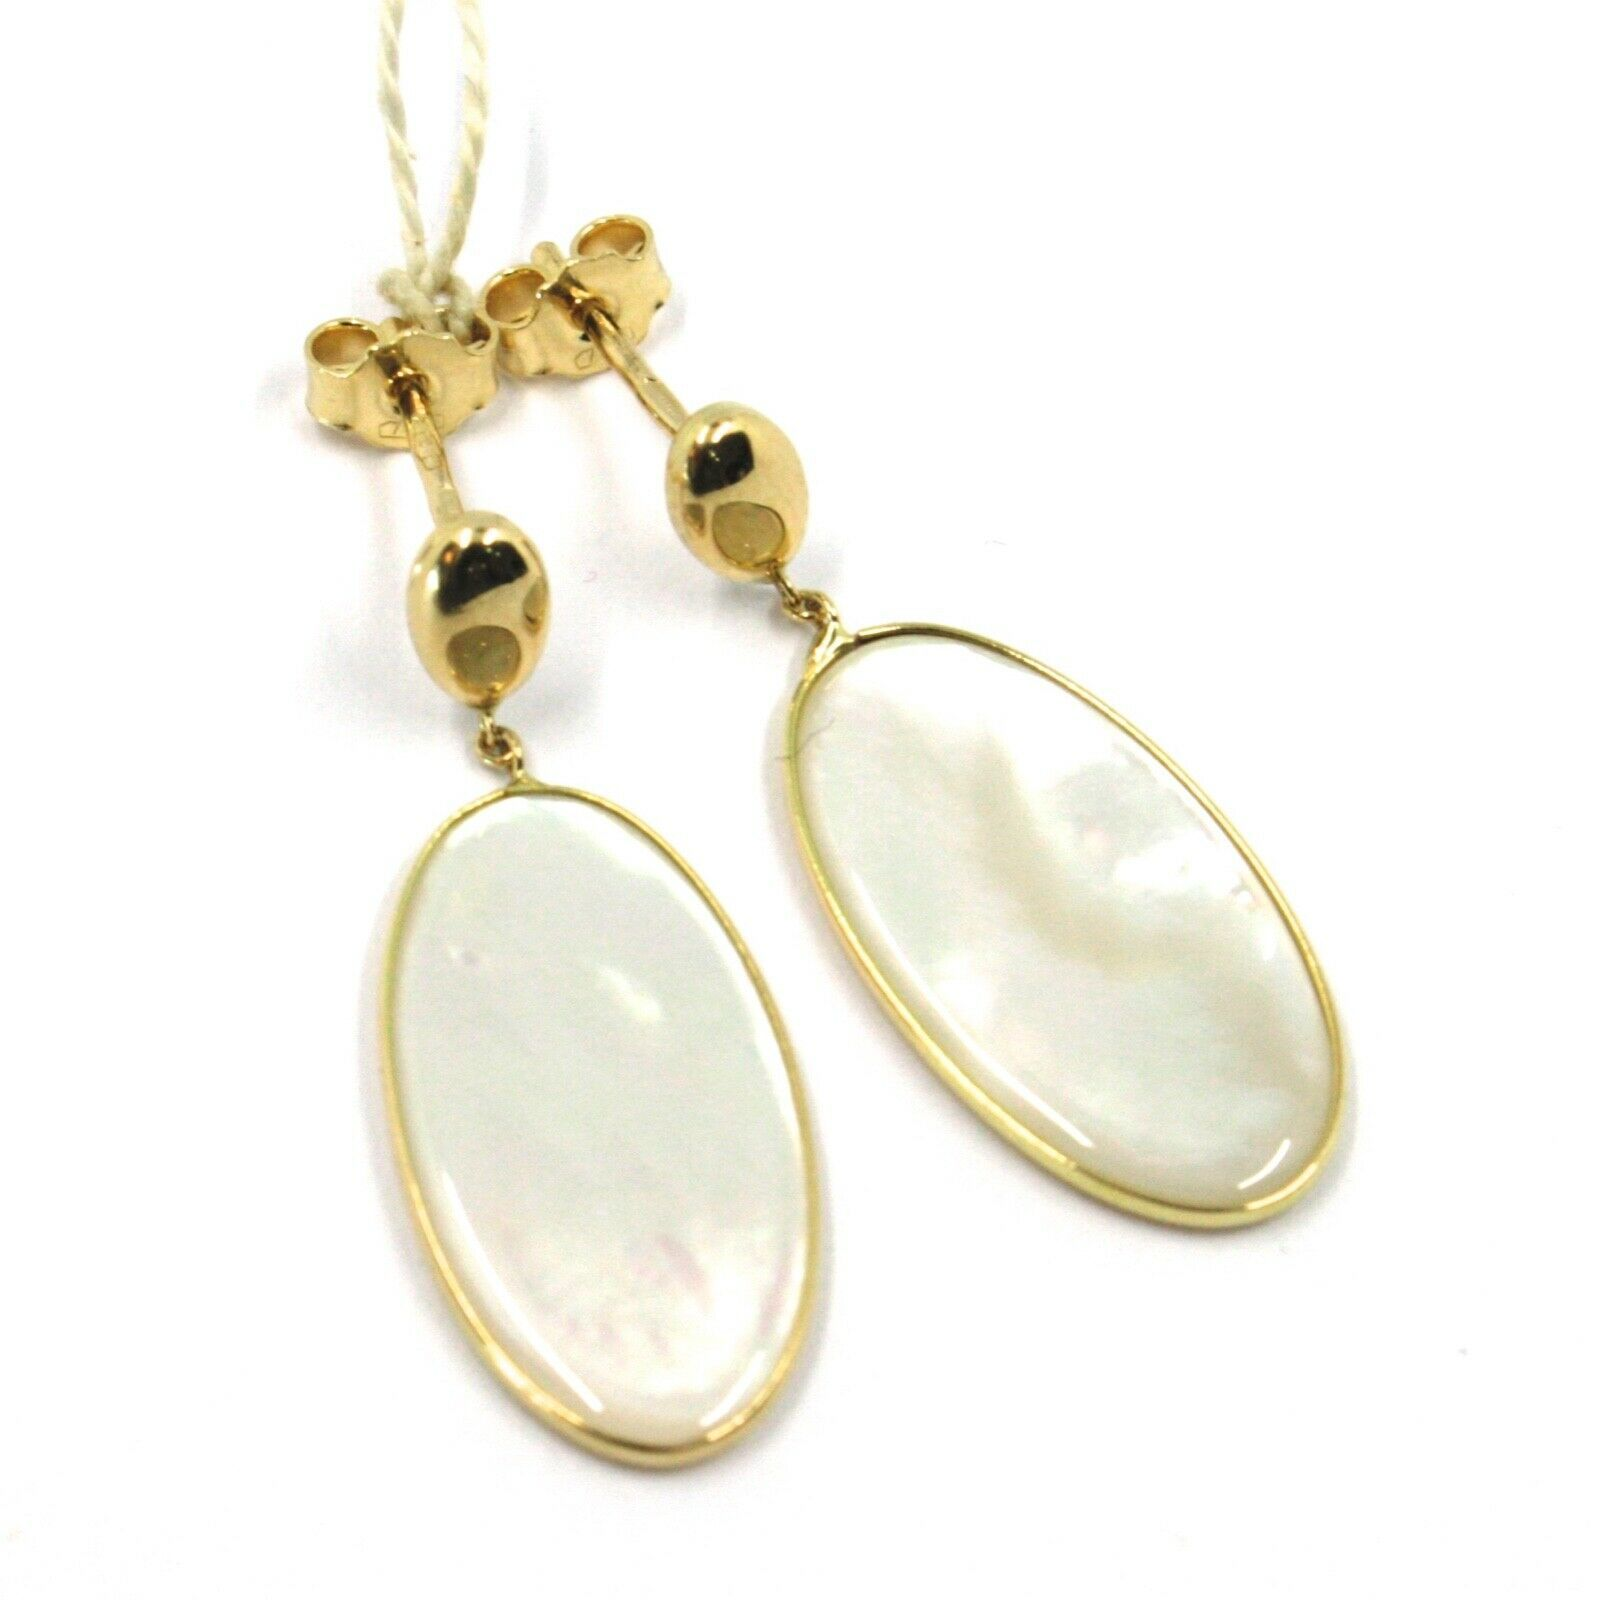 18K YELLOW GOLD PENDANT EARRINGS, FLAT OVAL MOTHER OF PEARL, MADE IN ITALY